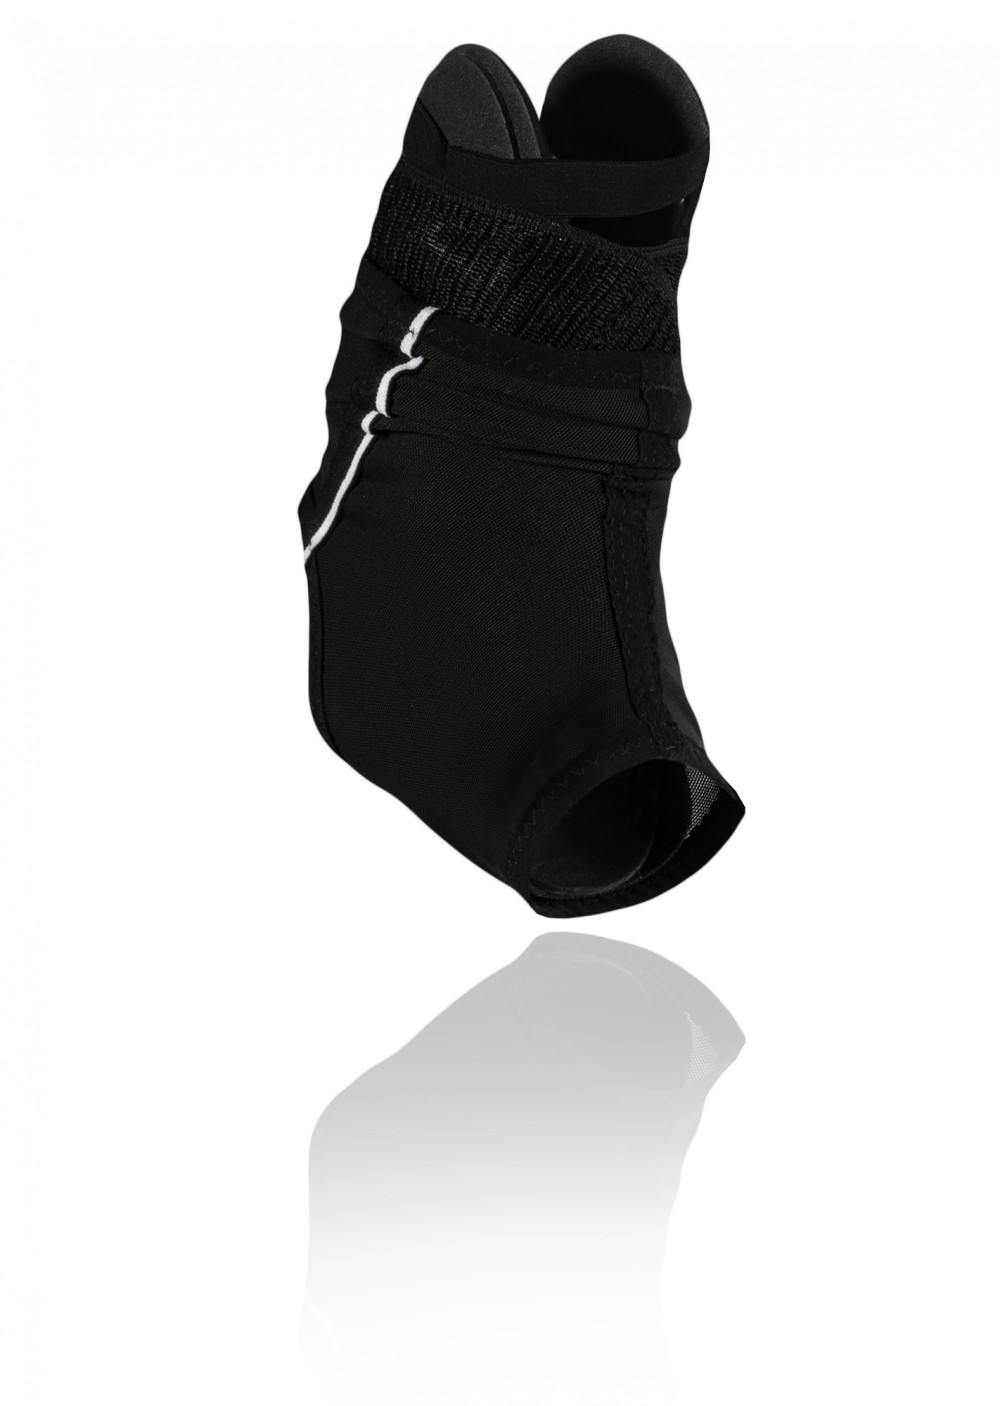 UD X-Stable Ankle Brace